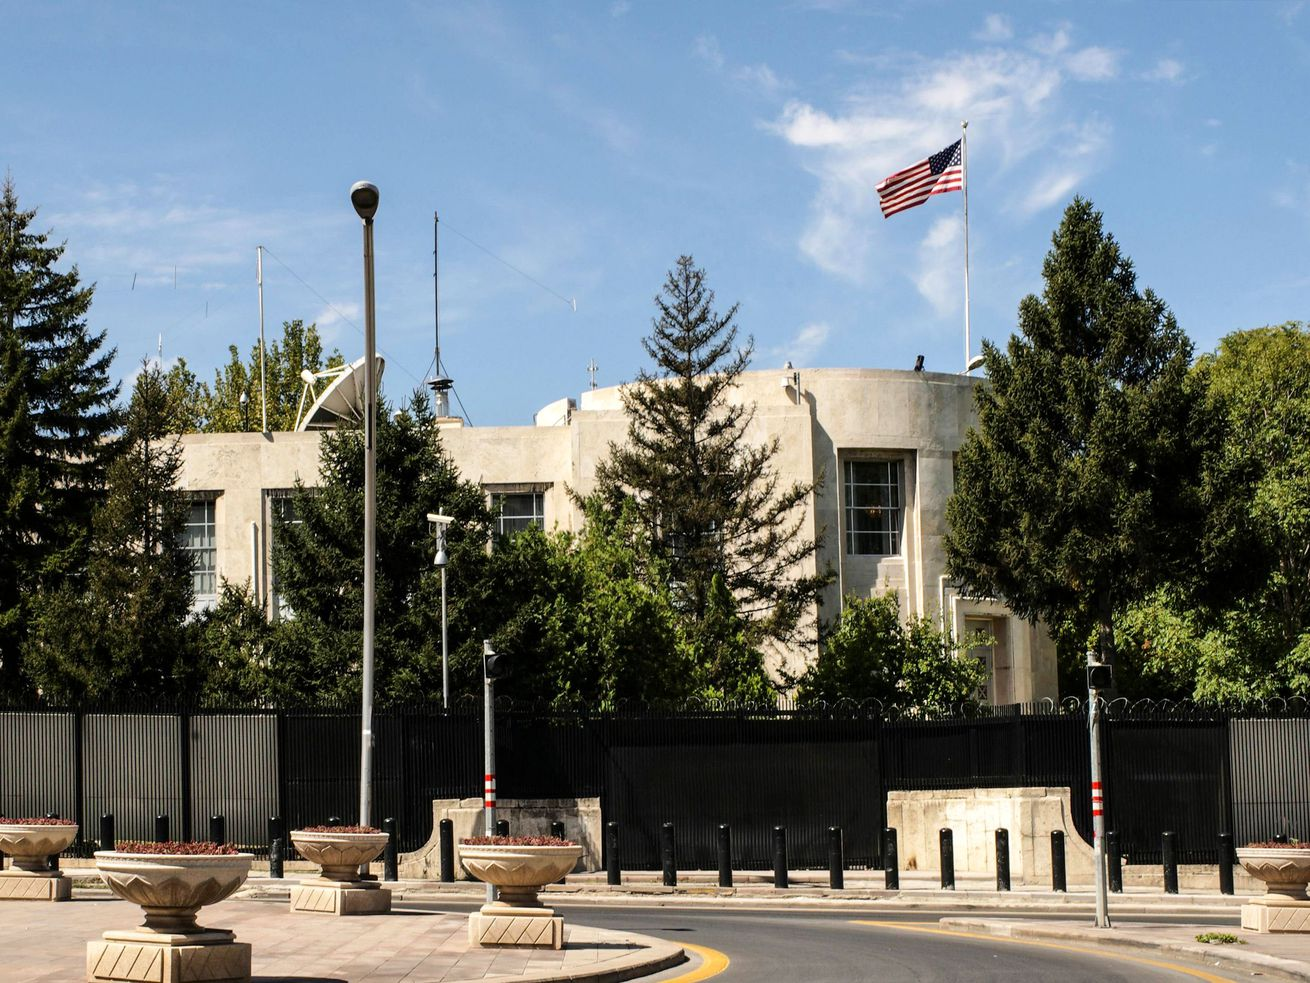 Gunshots were fired early on August 20, 2018, at the US embassy in Ankara but caused no casualties, Turkish and American officials said, amid escalating tensions between the two NATO allies.